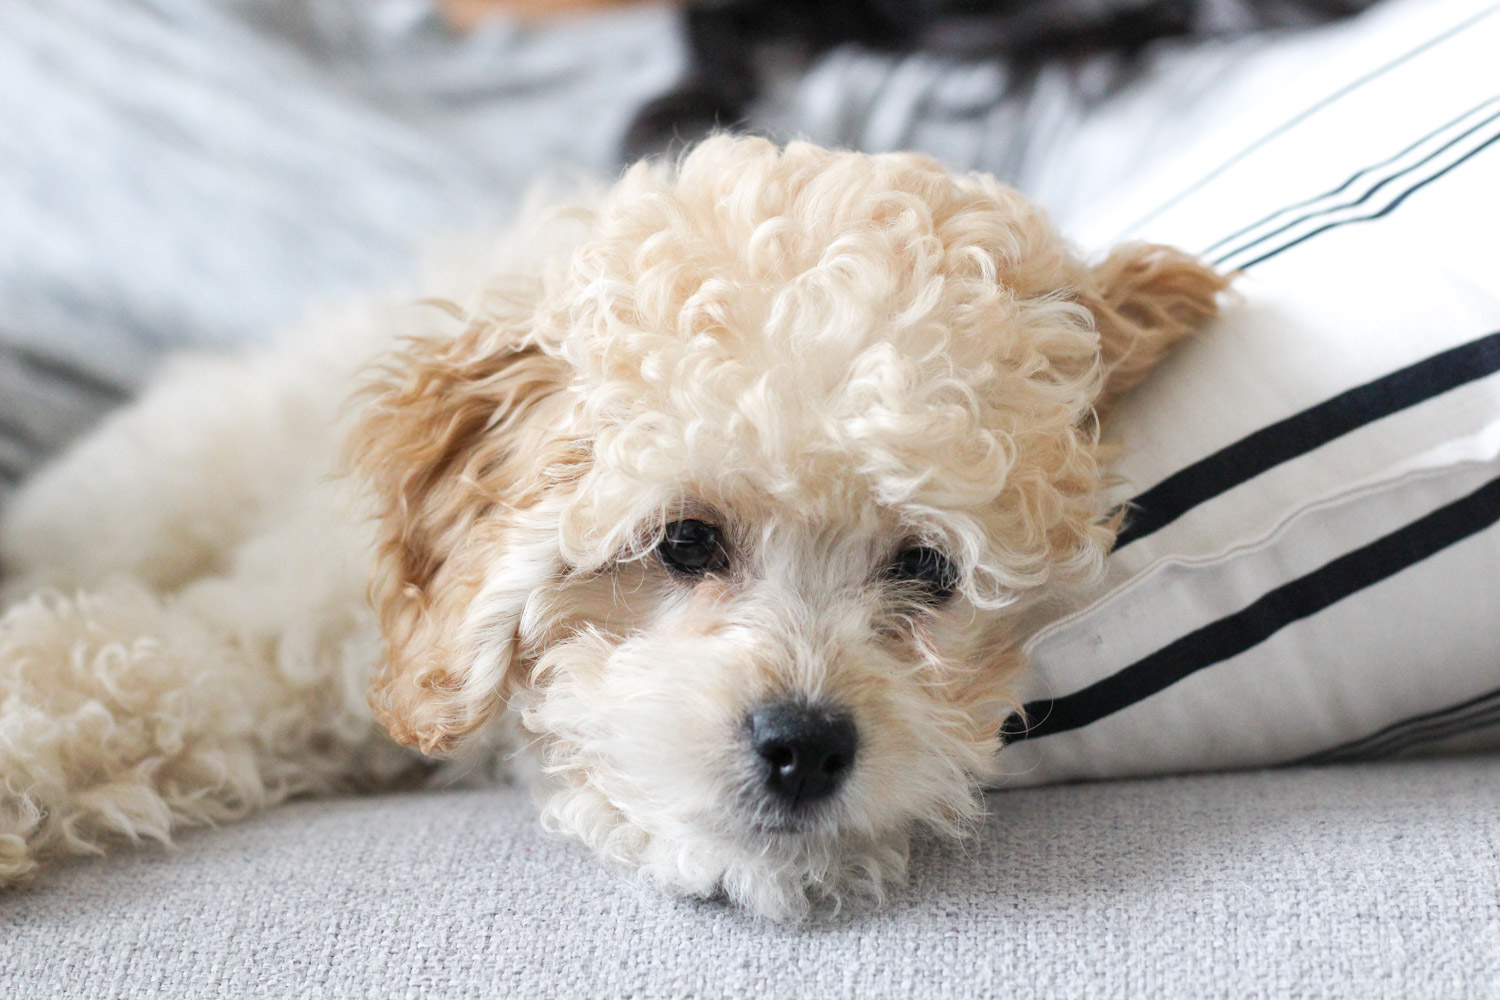 Toy cockapoo - Millies Adoption Story, featured by popular DC lifestyle blogger, Monica Dutia